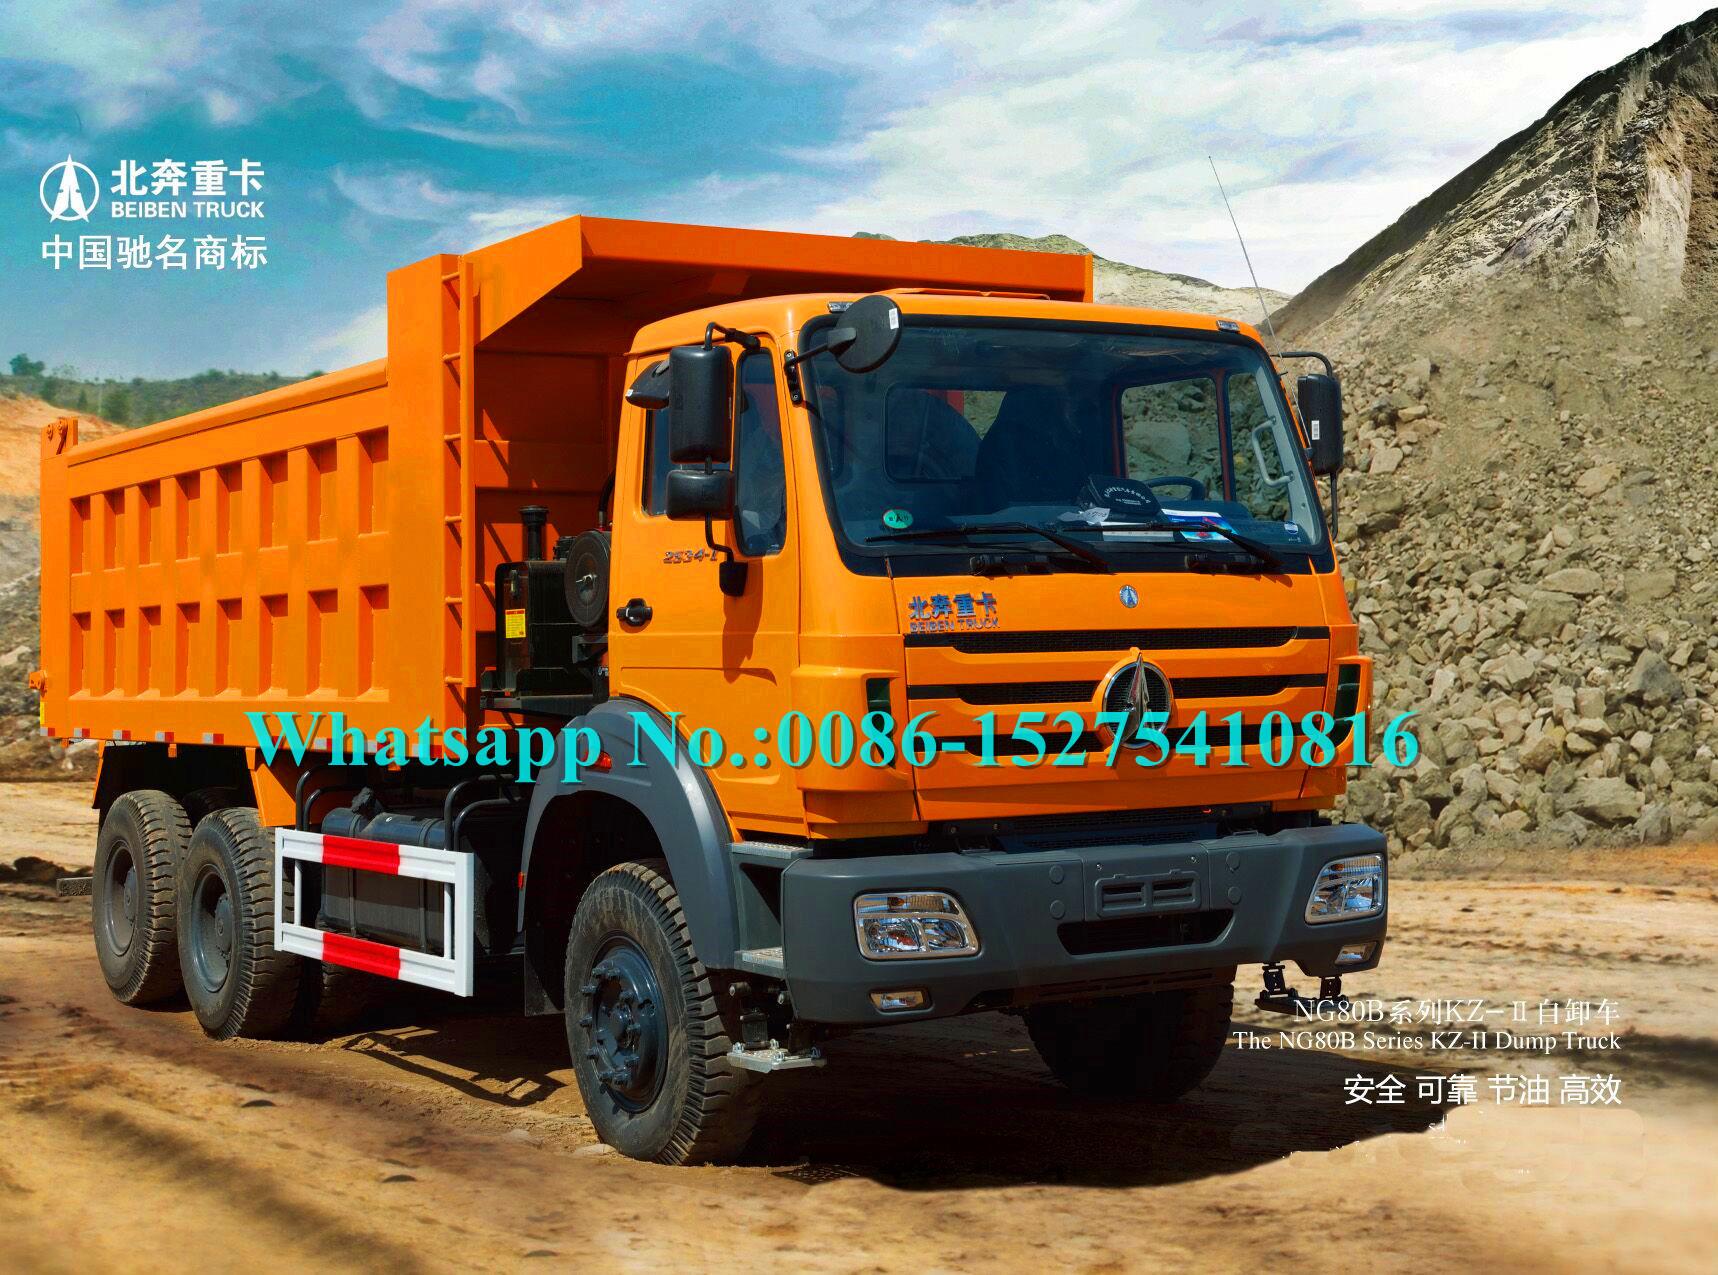 Beiben 2634K 340HP Heavy Duty Dump Truck 6x4 10 Wheeler LHD Strong Off Road Performance